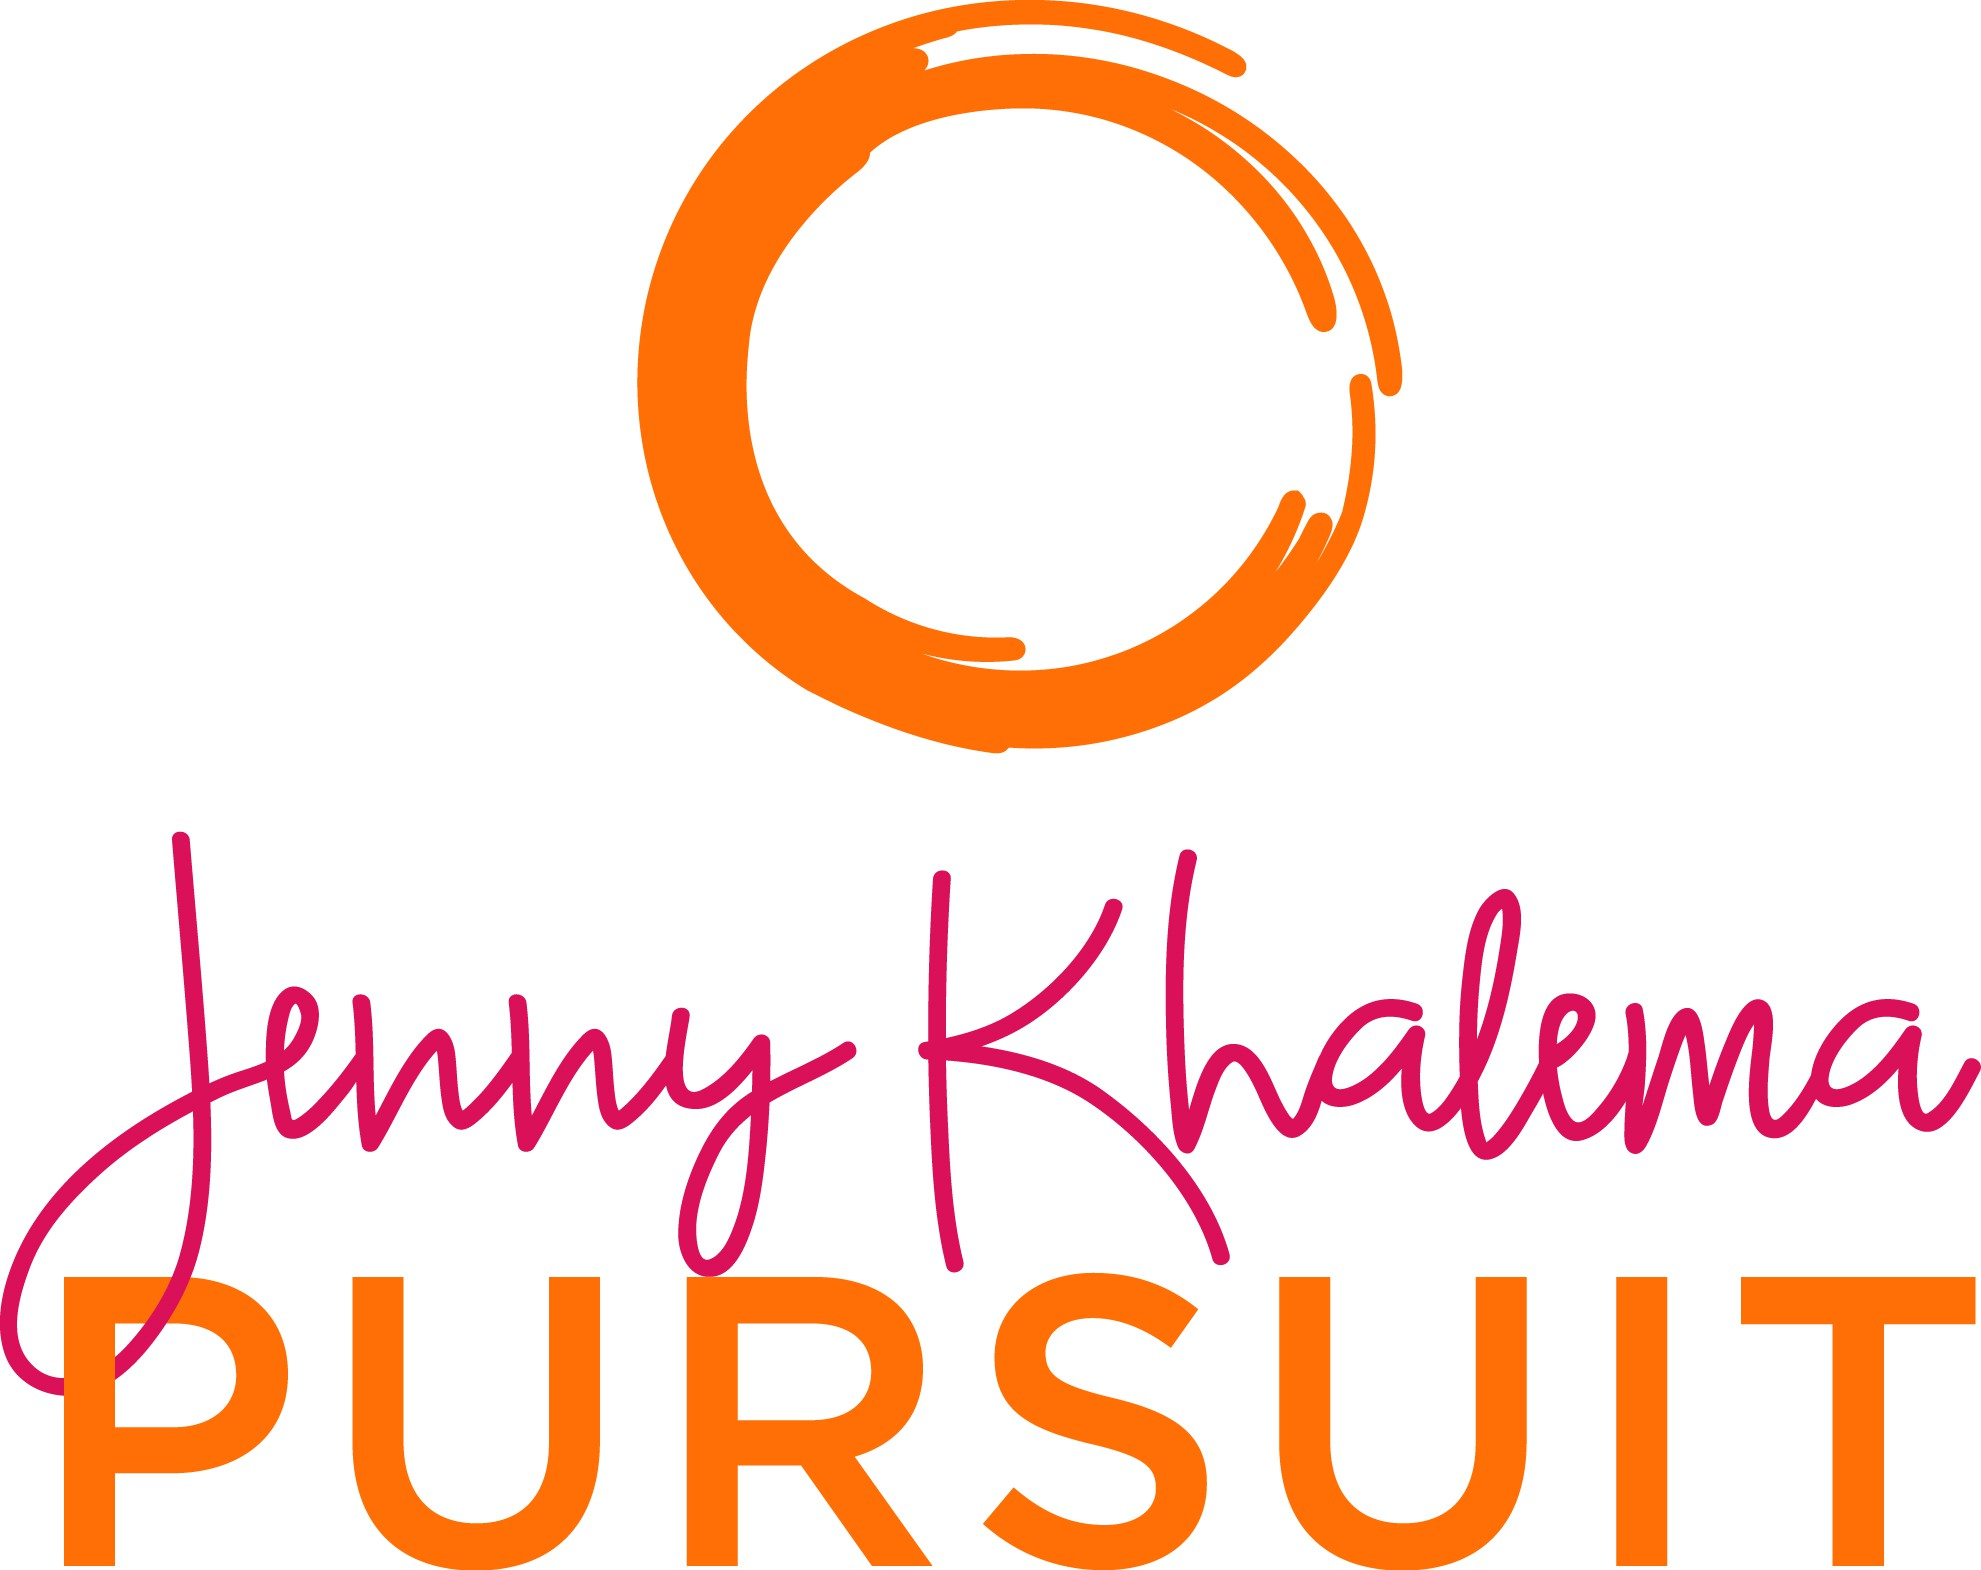 Jenny Khalema Pursuit - Revised Logo